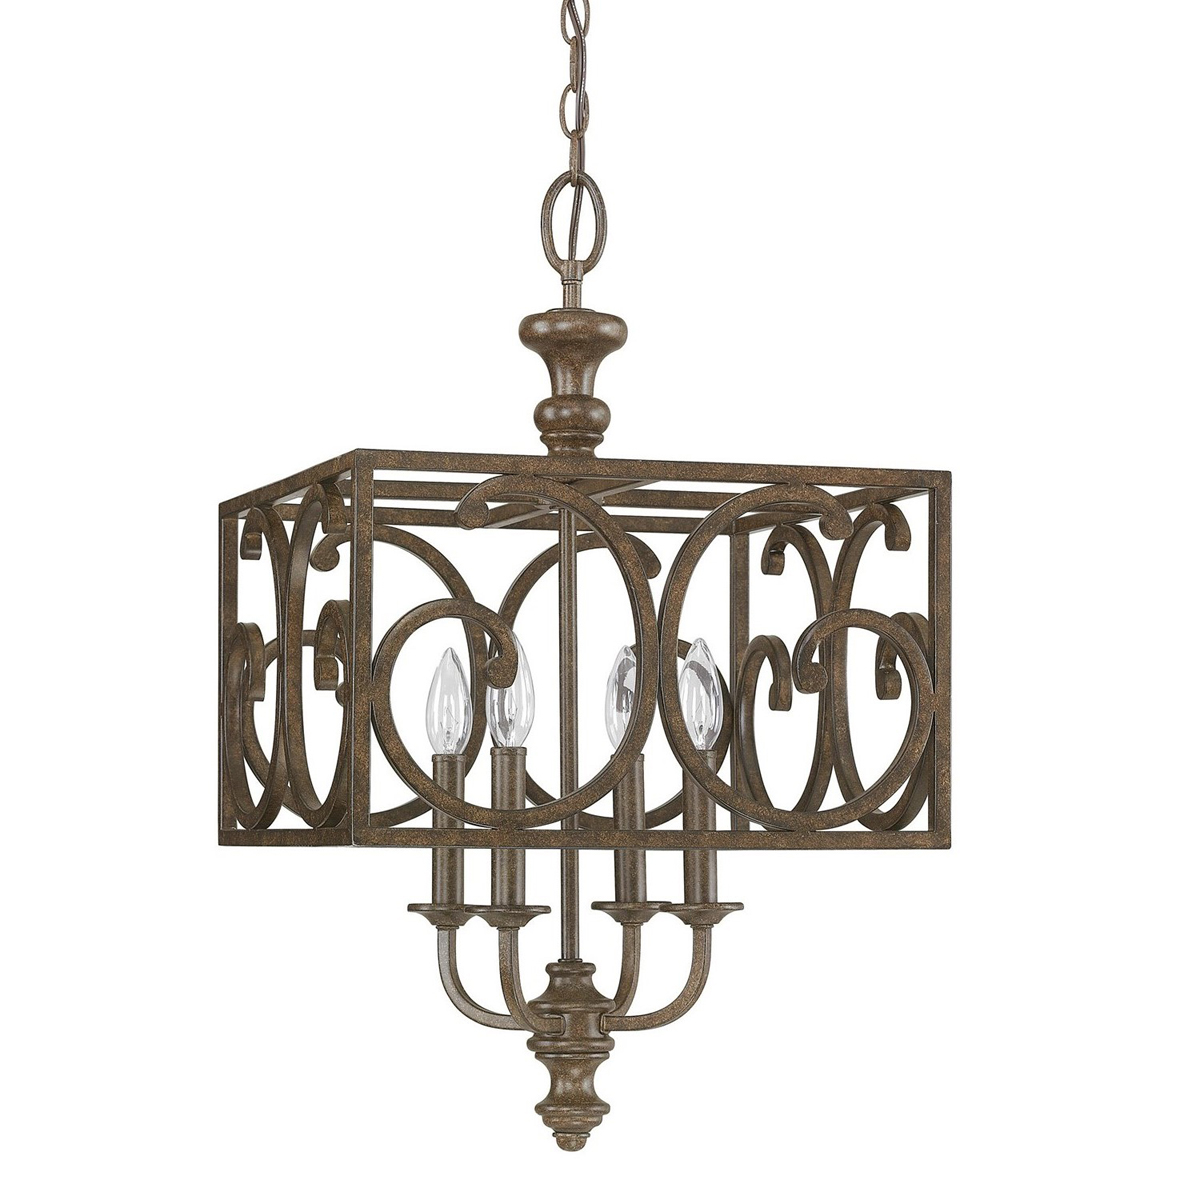 Foyer Lighting Fixtures : Capital lighting harrison light foyer fixture